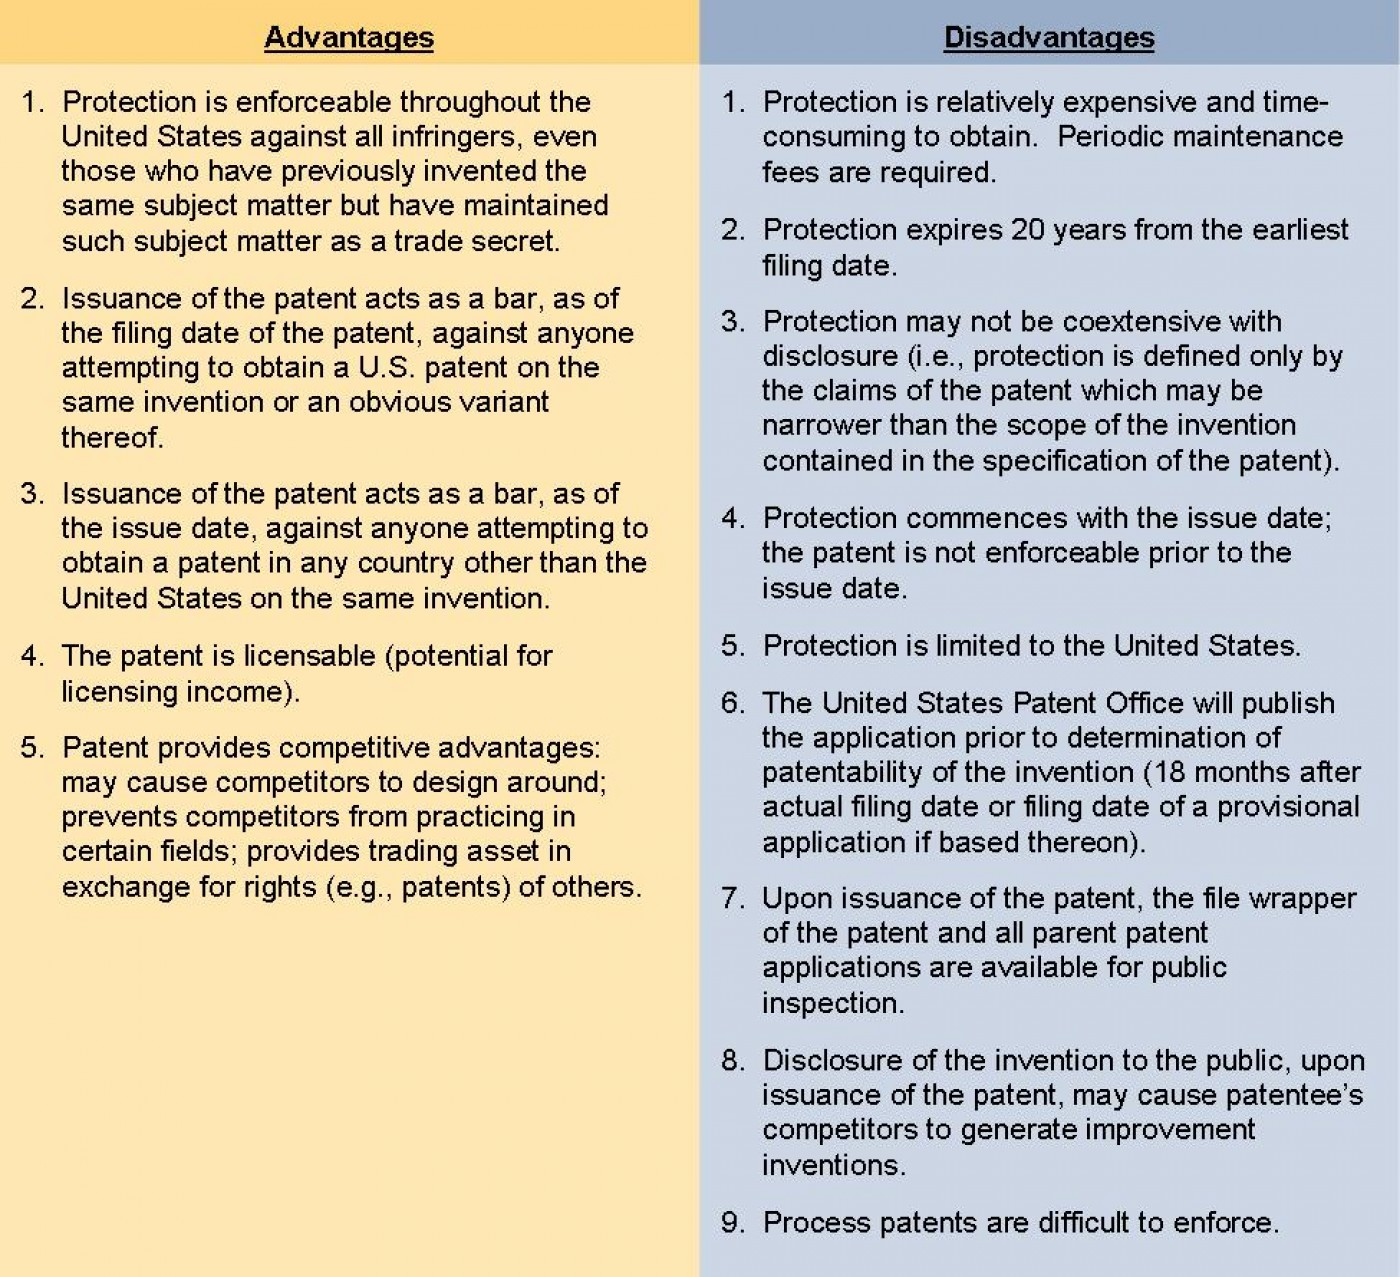 027 News87pic2 Advantage And Disadvantage Of Science Essay Shocking On Advantages Disadvantages In Hindi Language With Quotes Tamil Pdf 1400